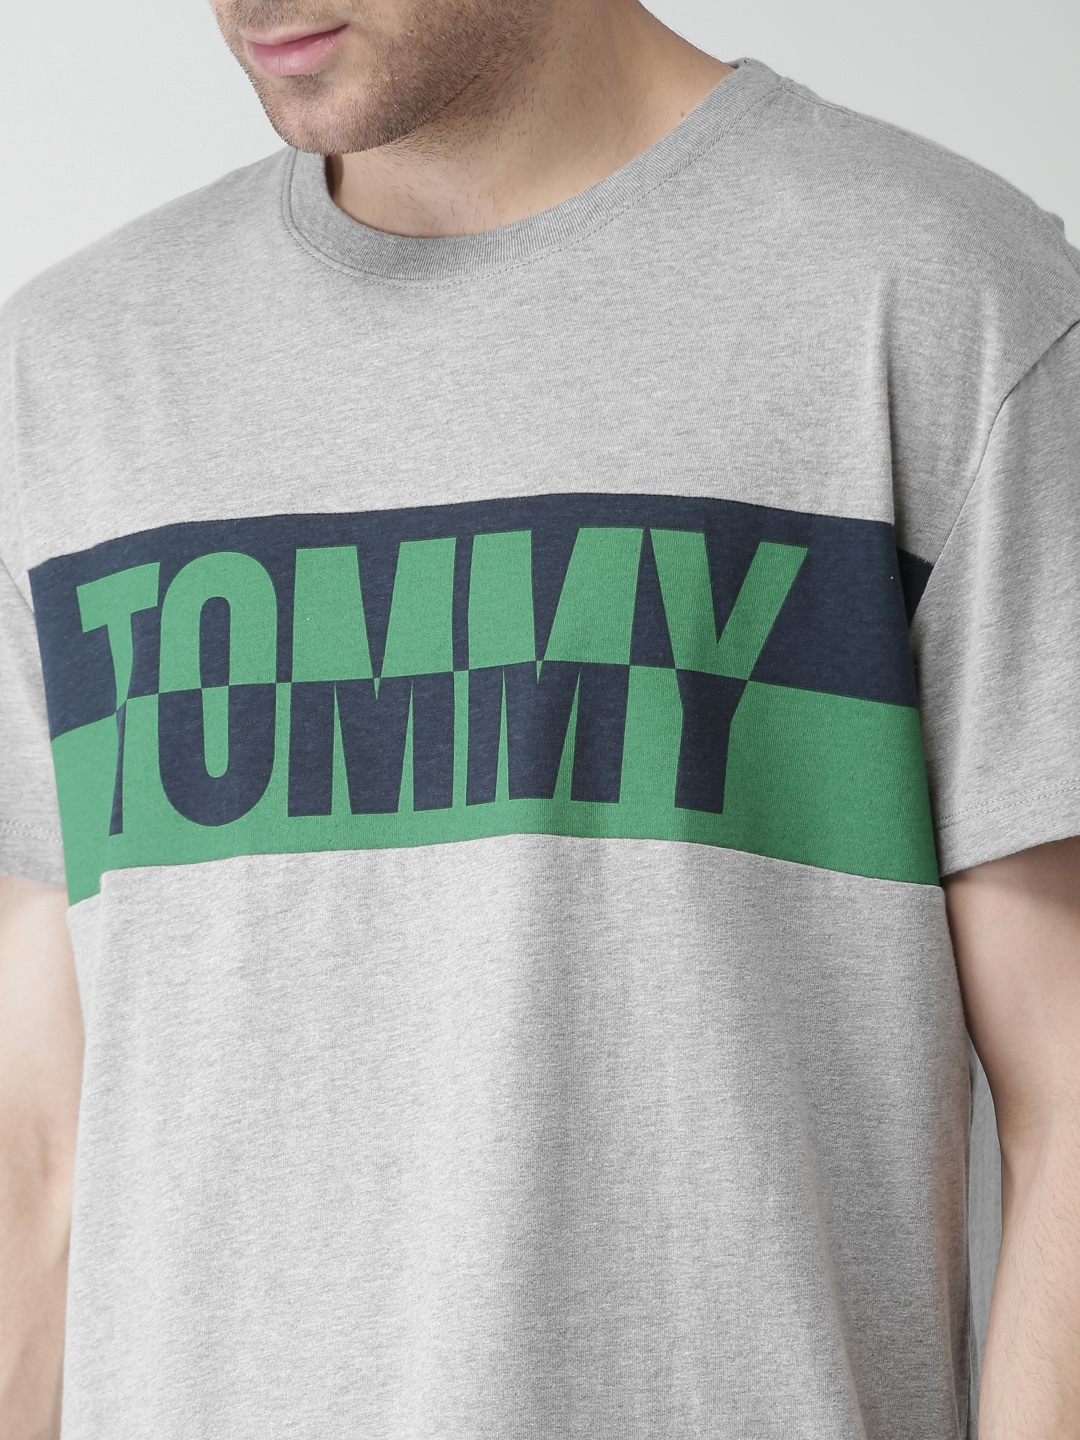 5e0e0492 Buy Tommy Hilfiger Men Grey Printed Relaxed Fit T Shirt - Tshirts ...